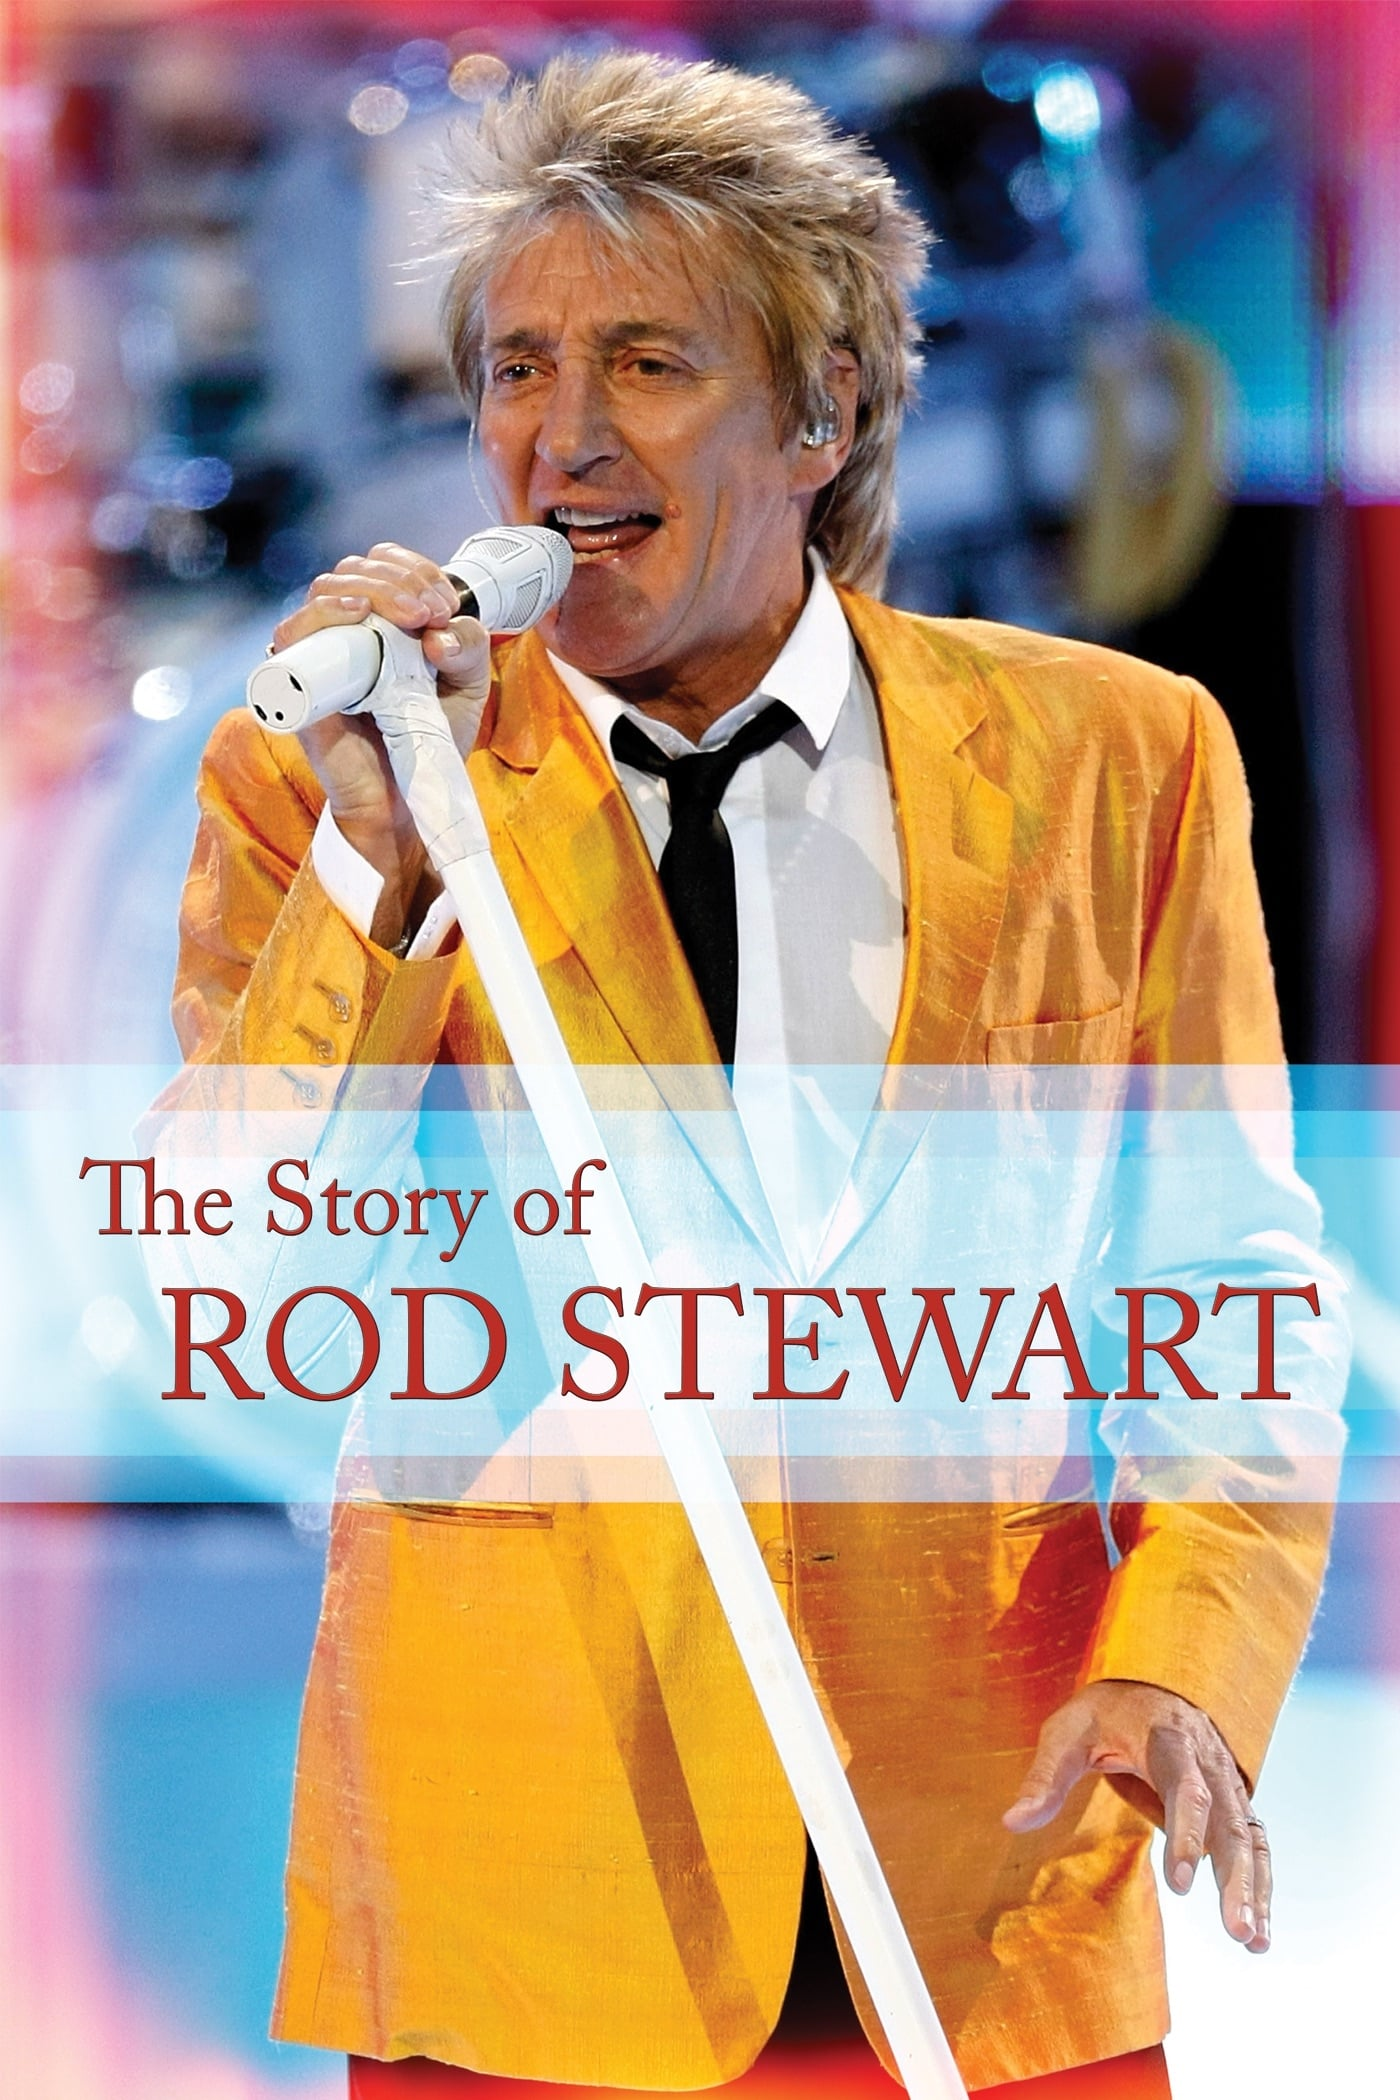 The Story of Rod Stewart on FREECABLE TV